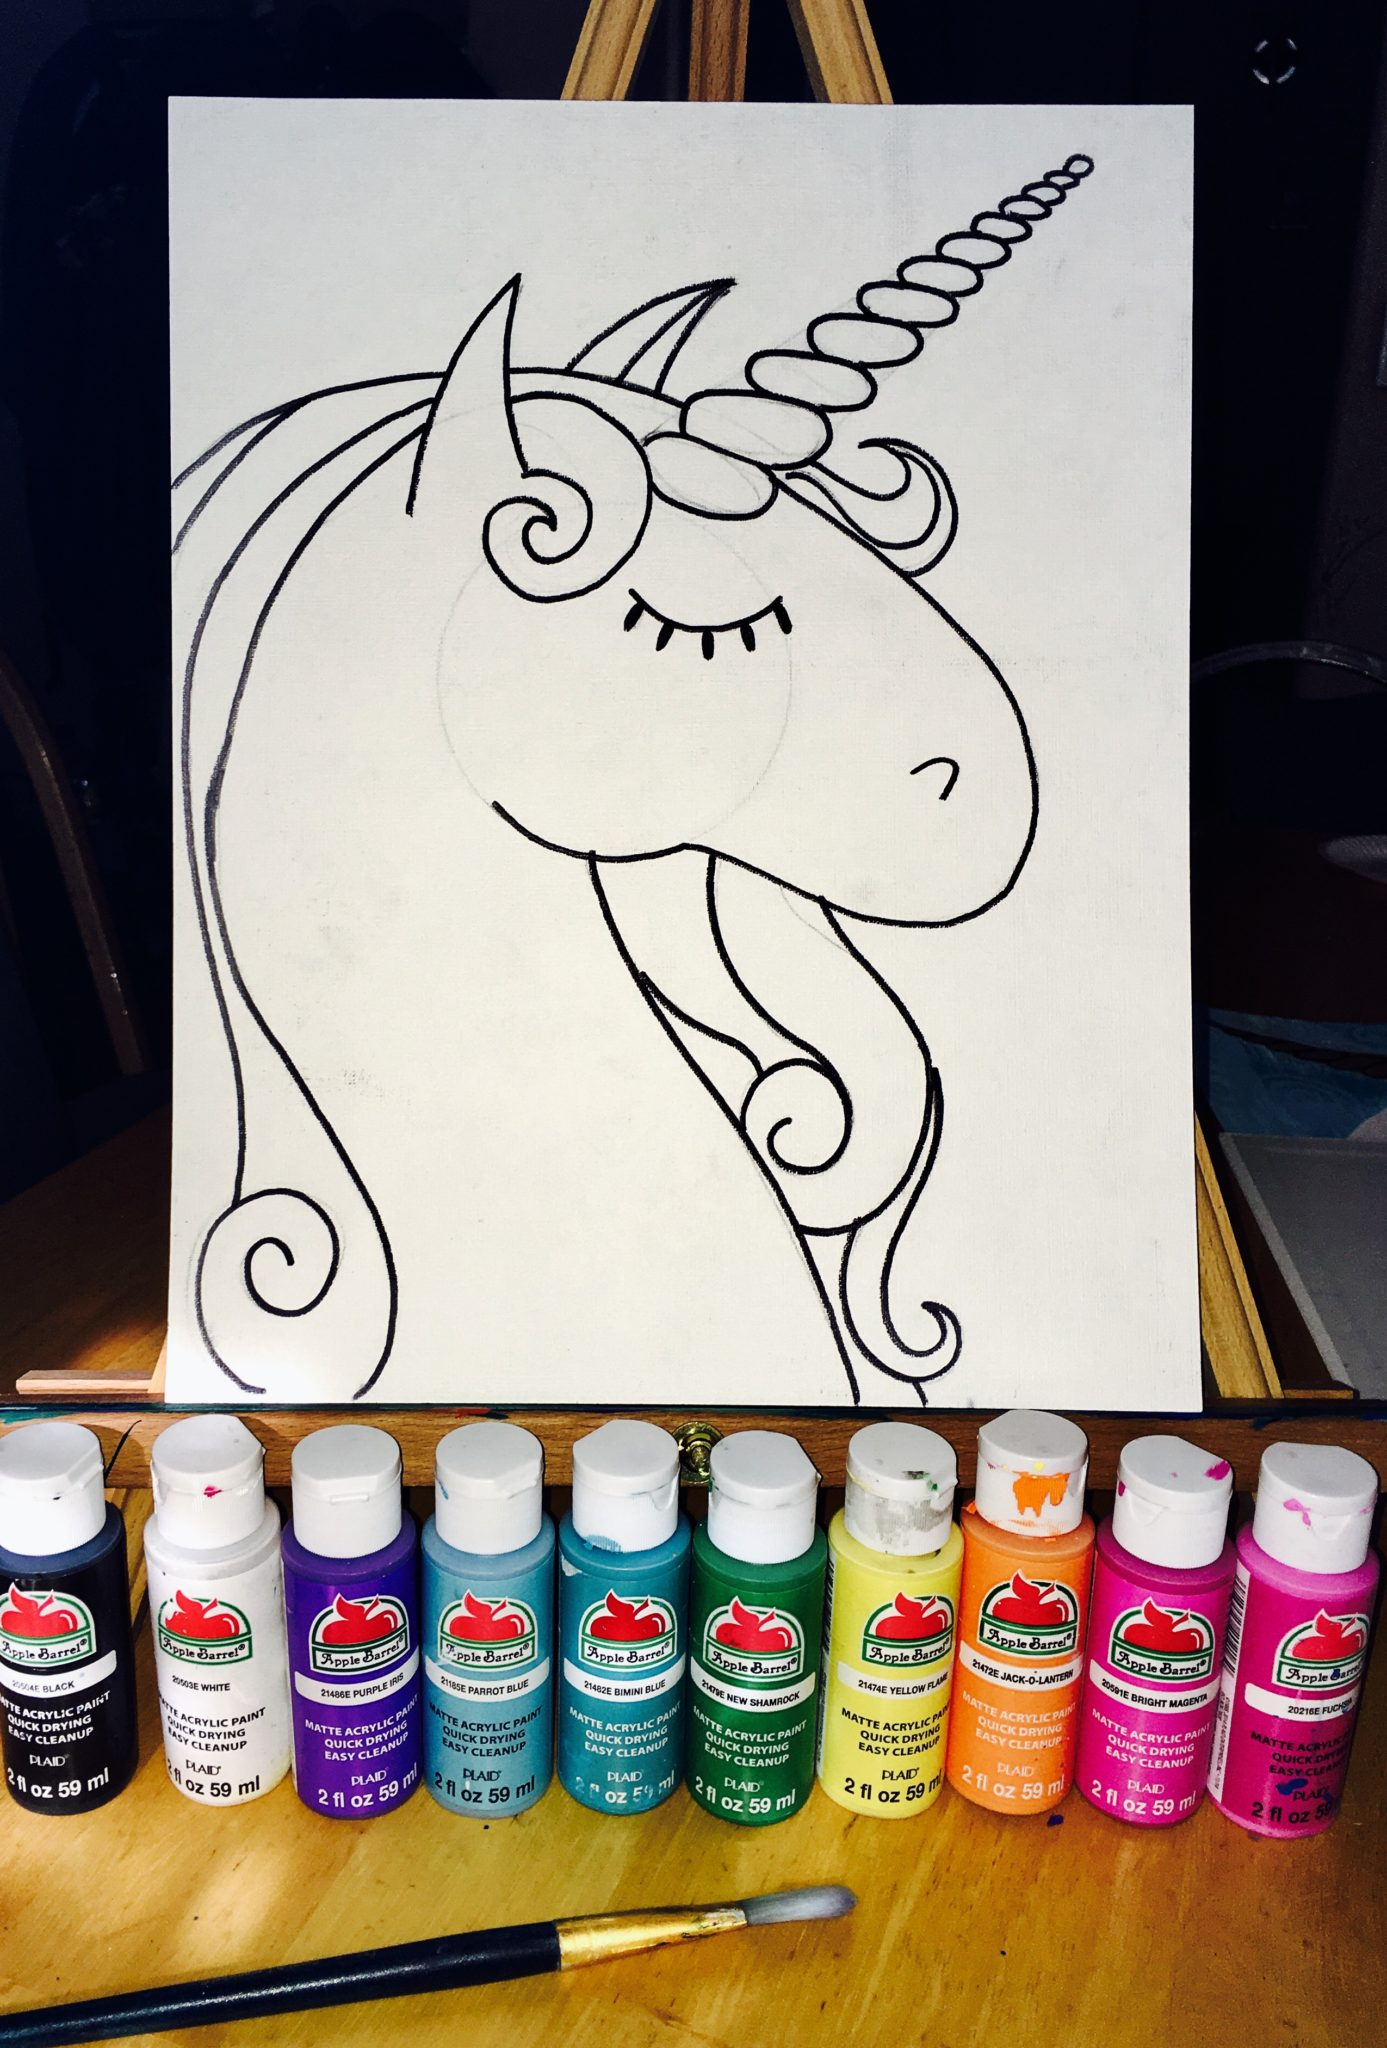 How To Paint A Unicorn - Step By Step Painting - photo#13